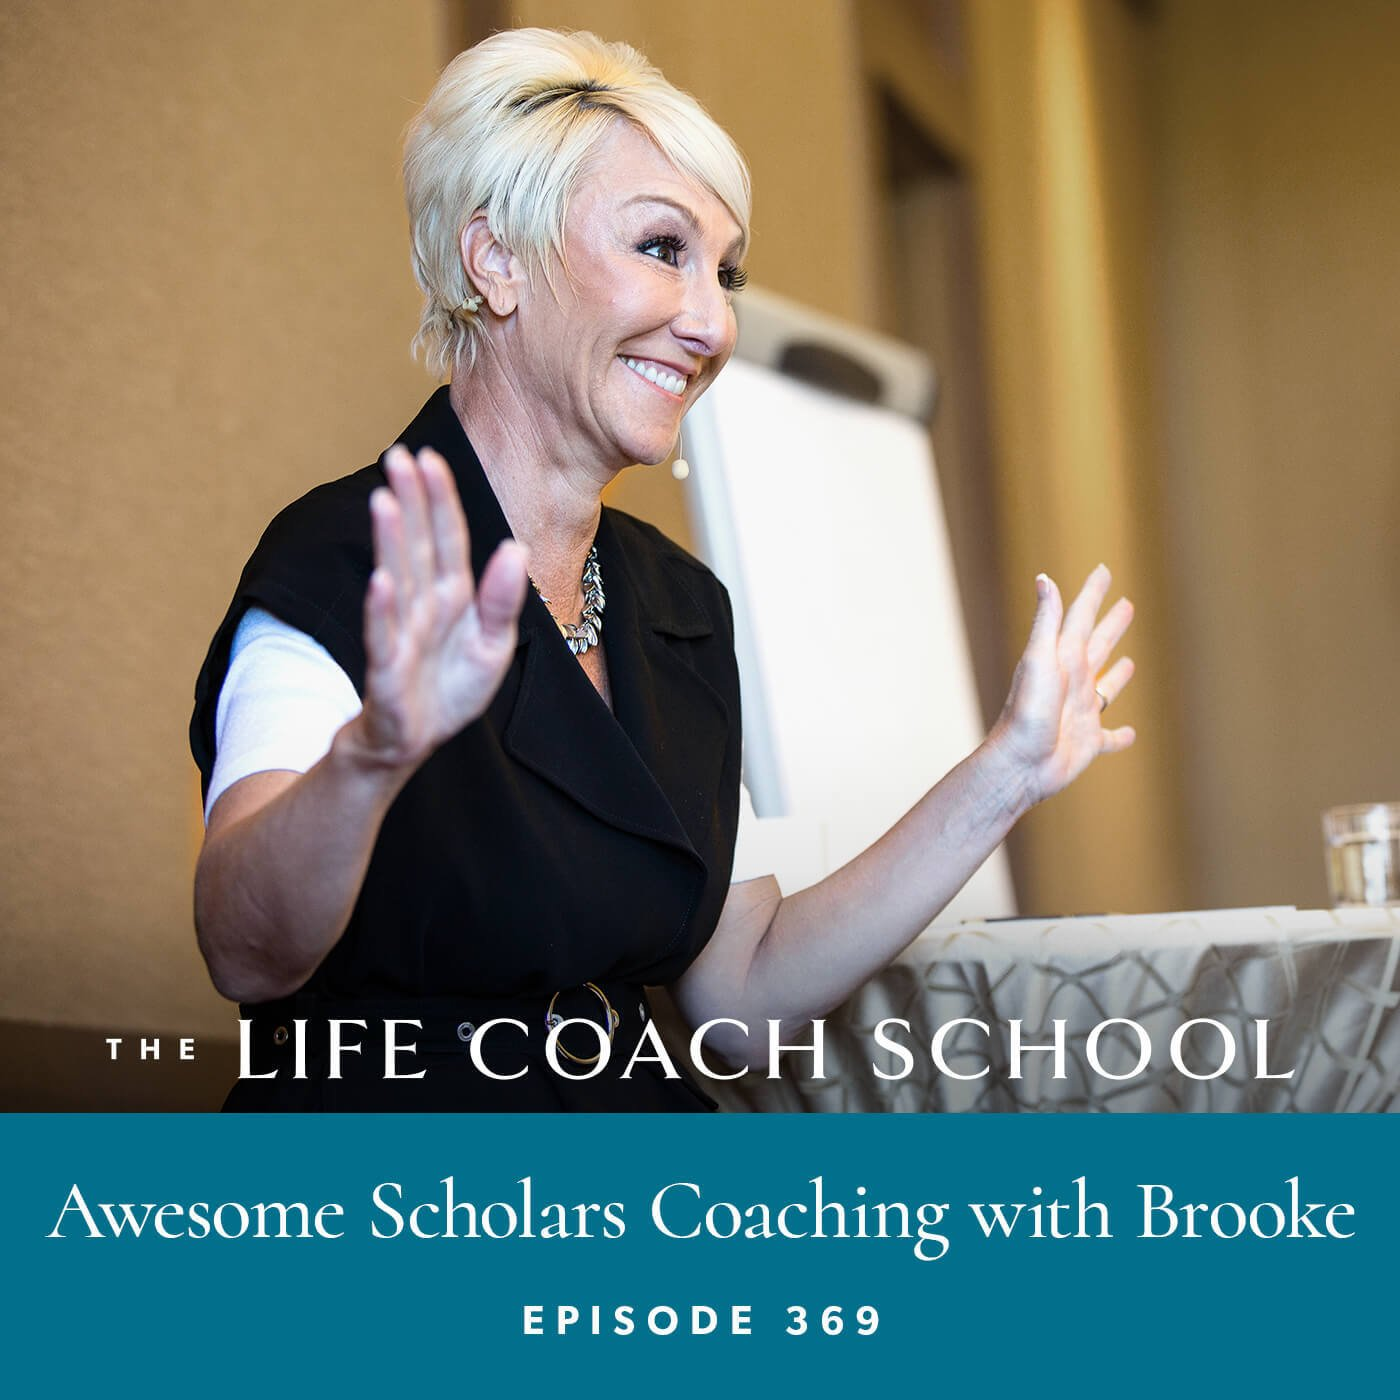 The Life Coach School Podcast with Brooke Castillo | Awesome Scholars Coaching with Brooke